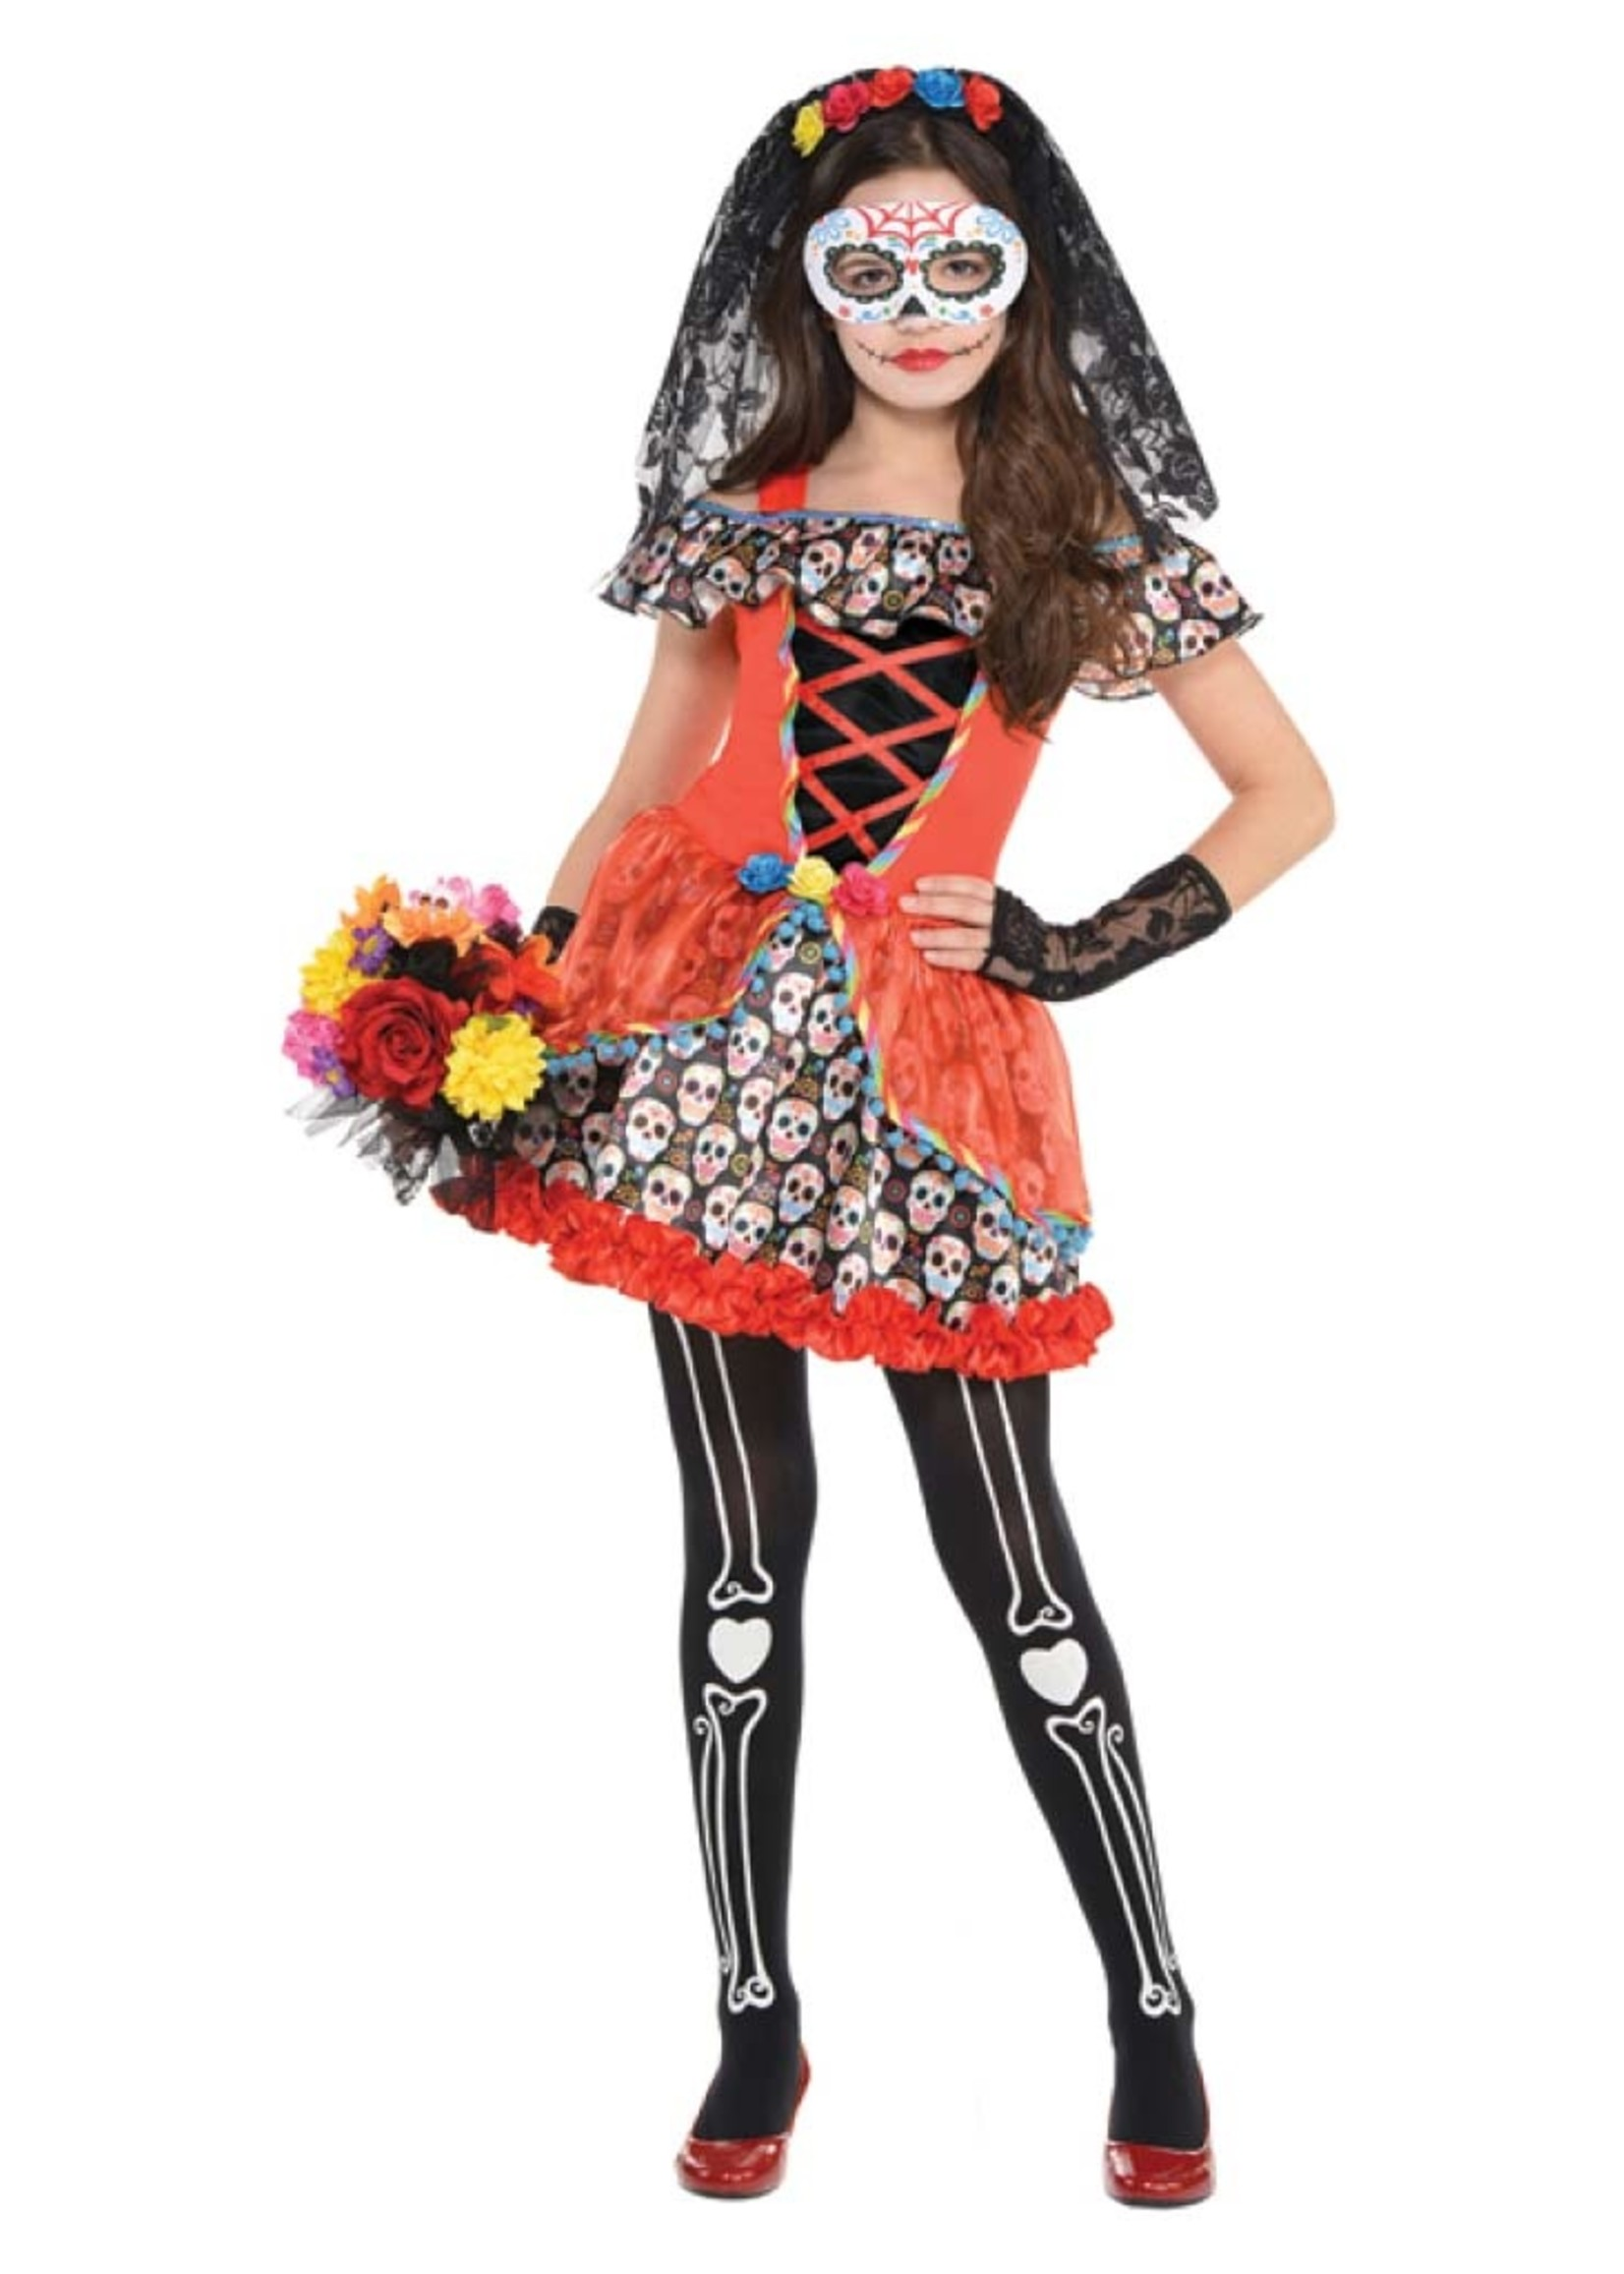 FUN WORLD Sugar Skull Senorita - Girls